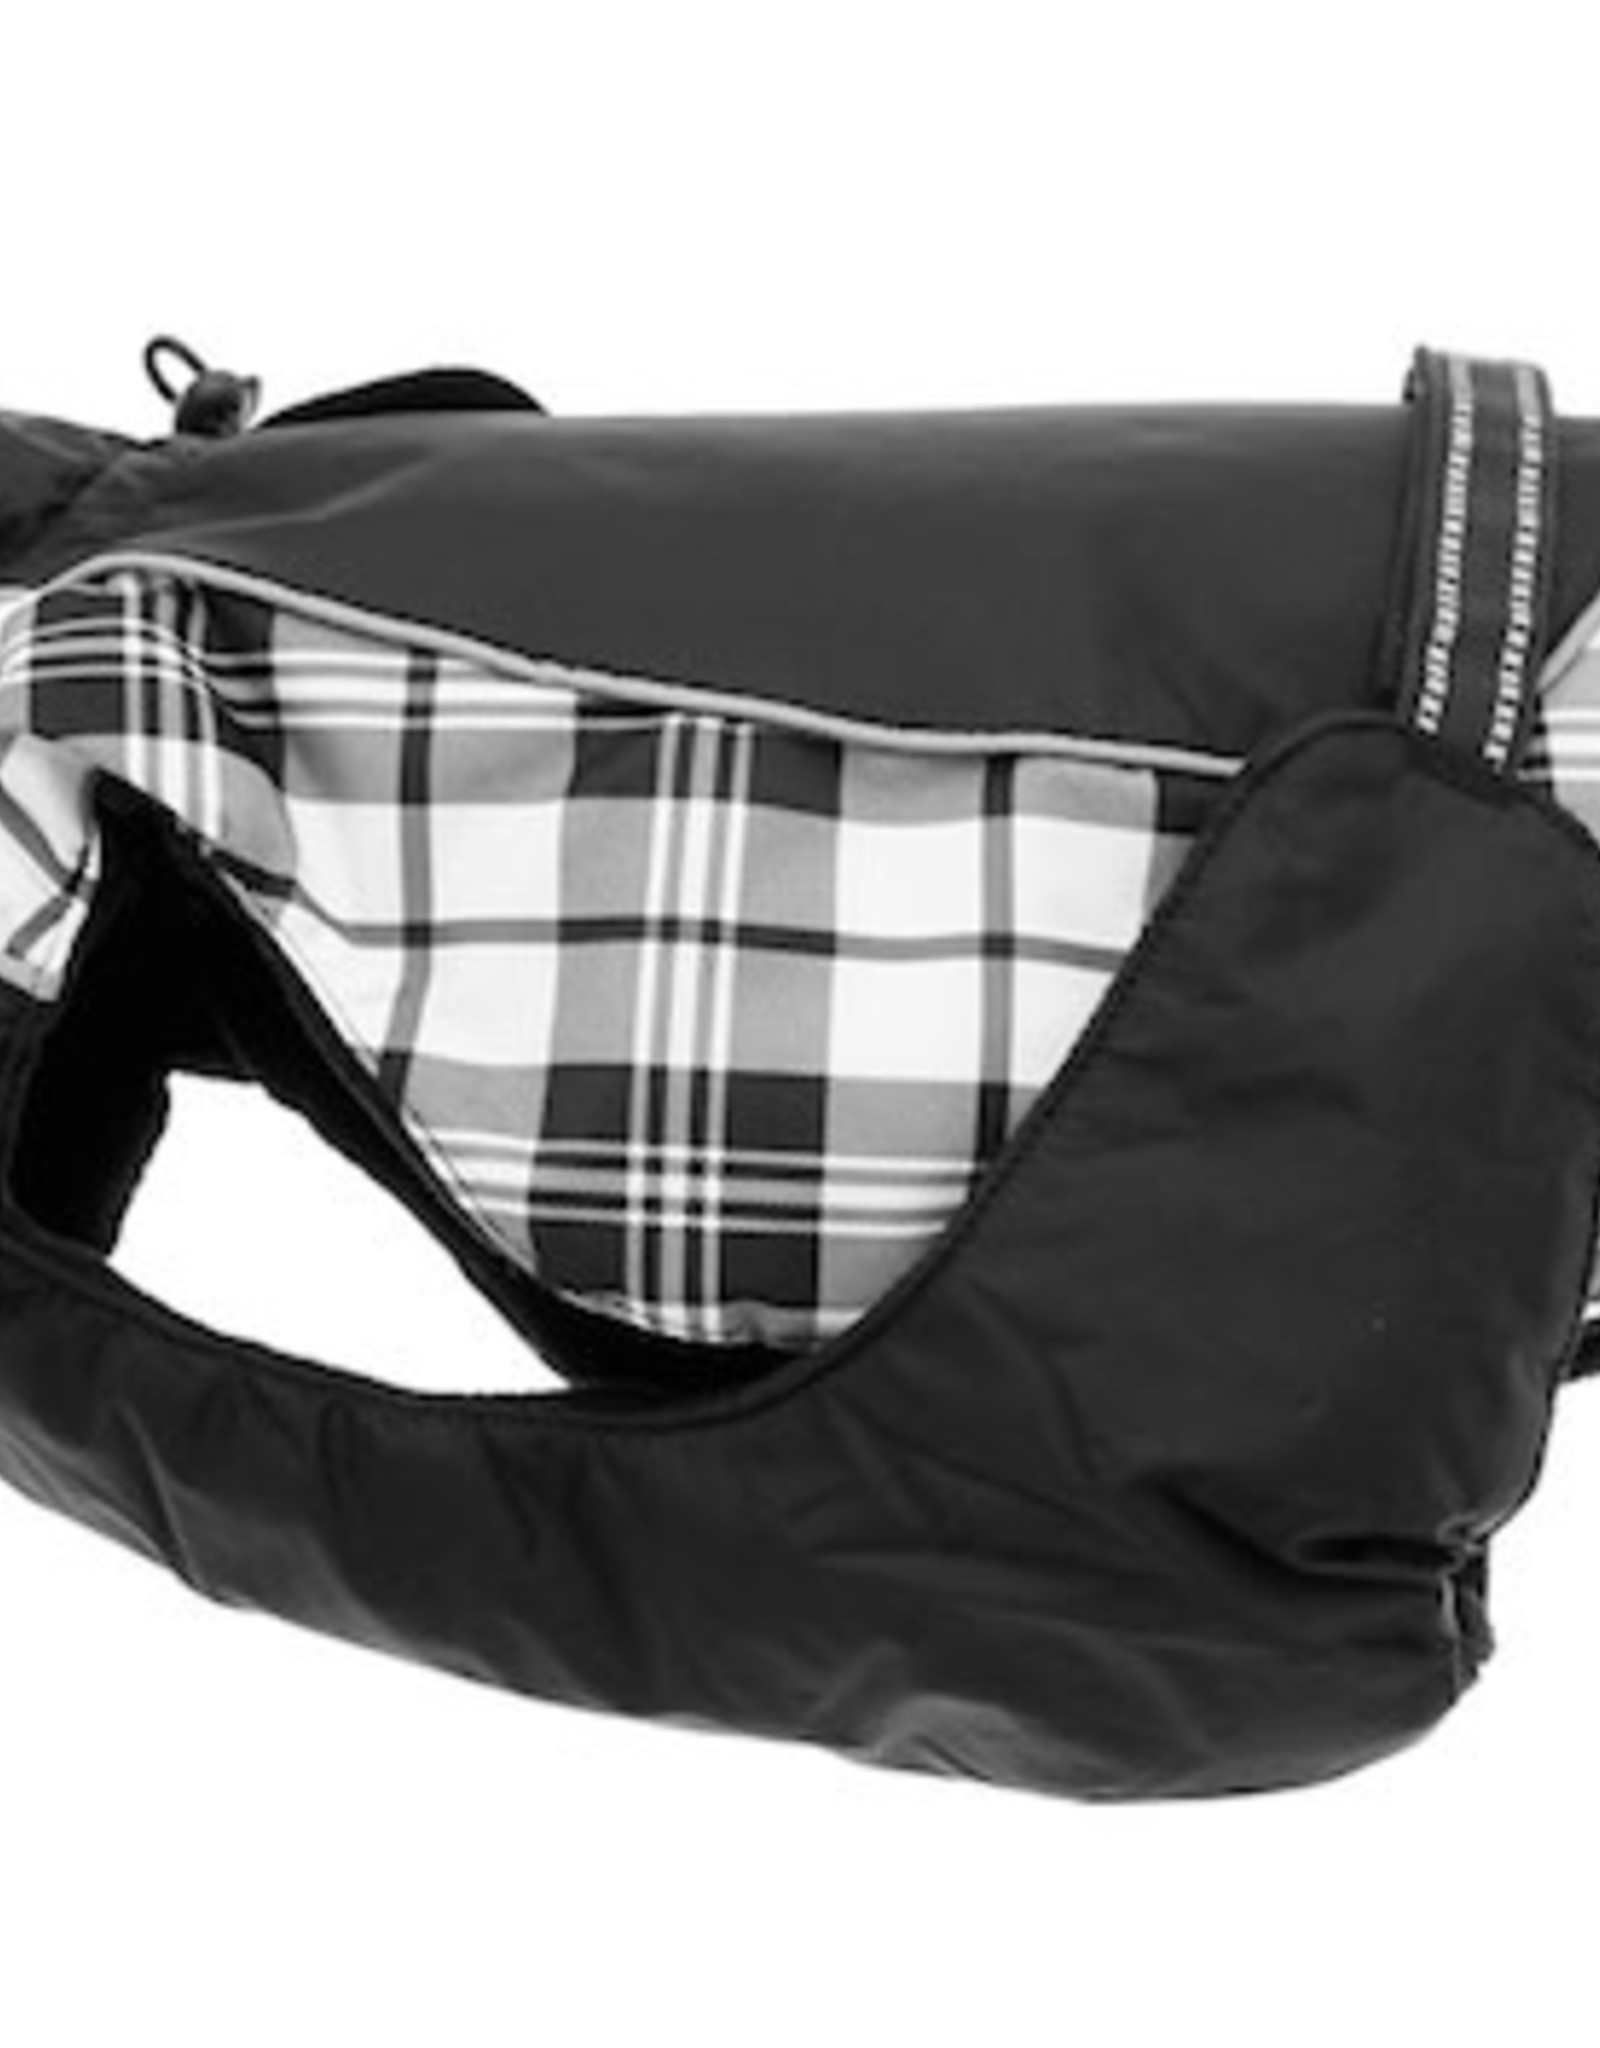 Doggie Design Alpine All-Weather Dog Coat Black & White